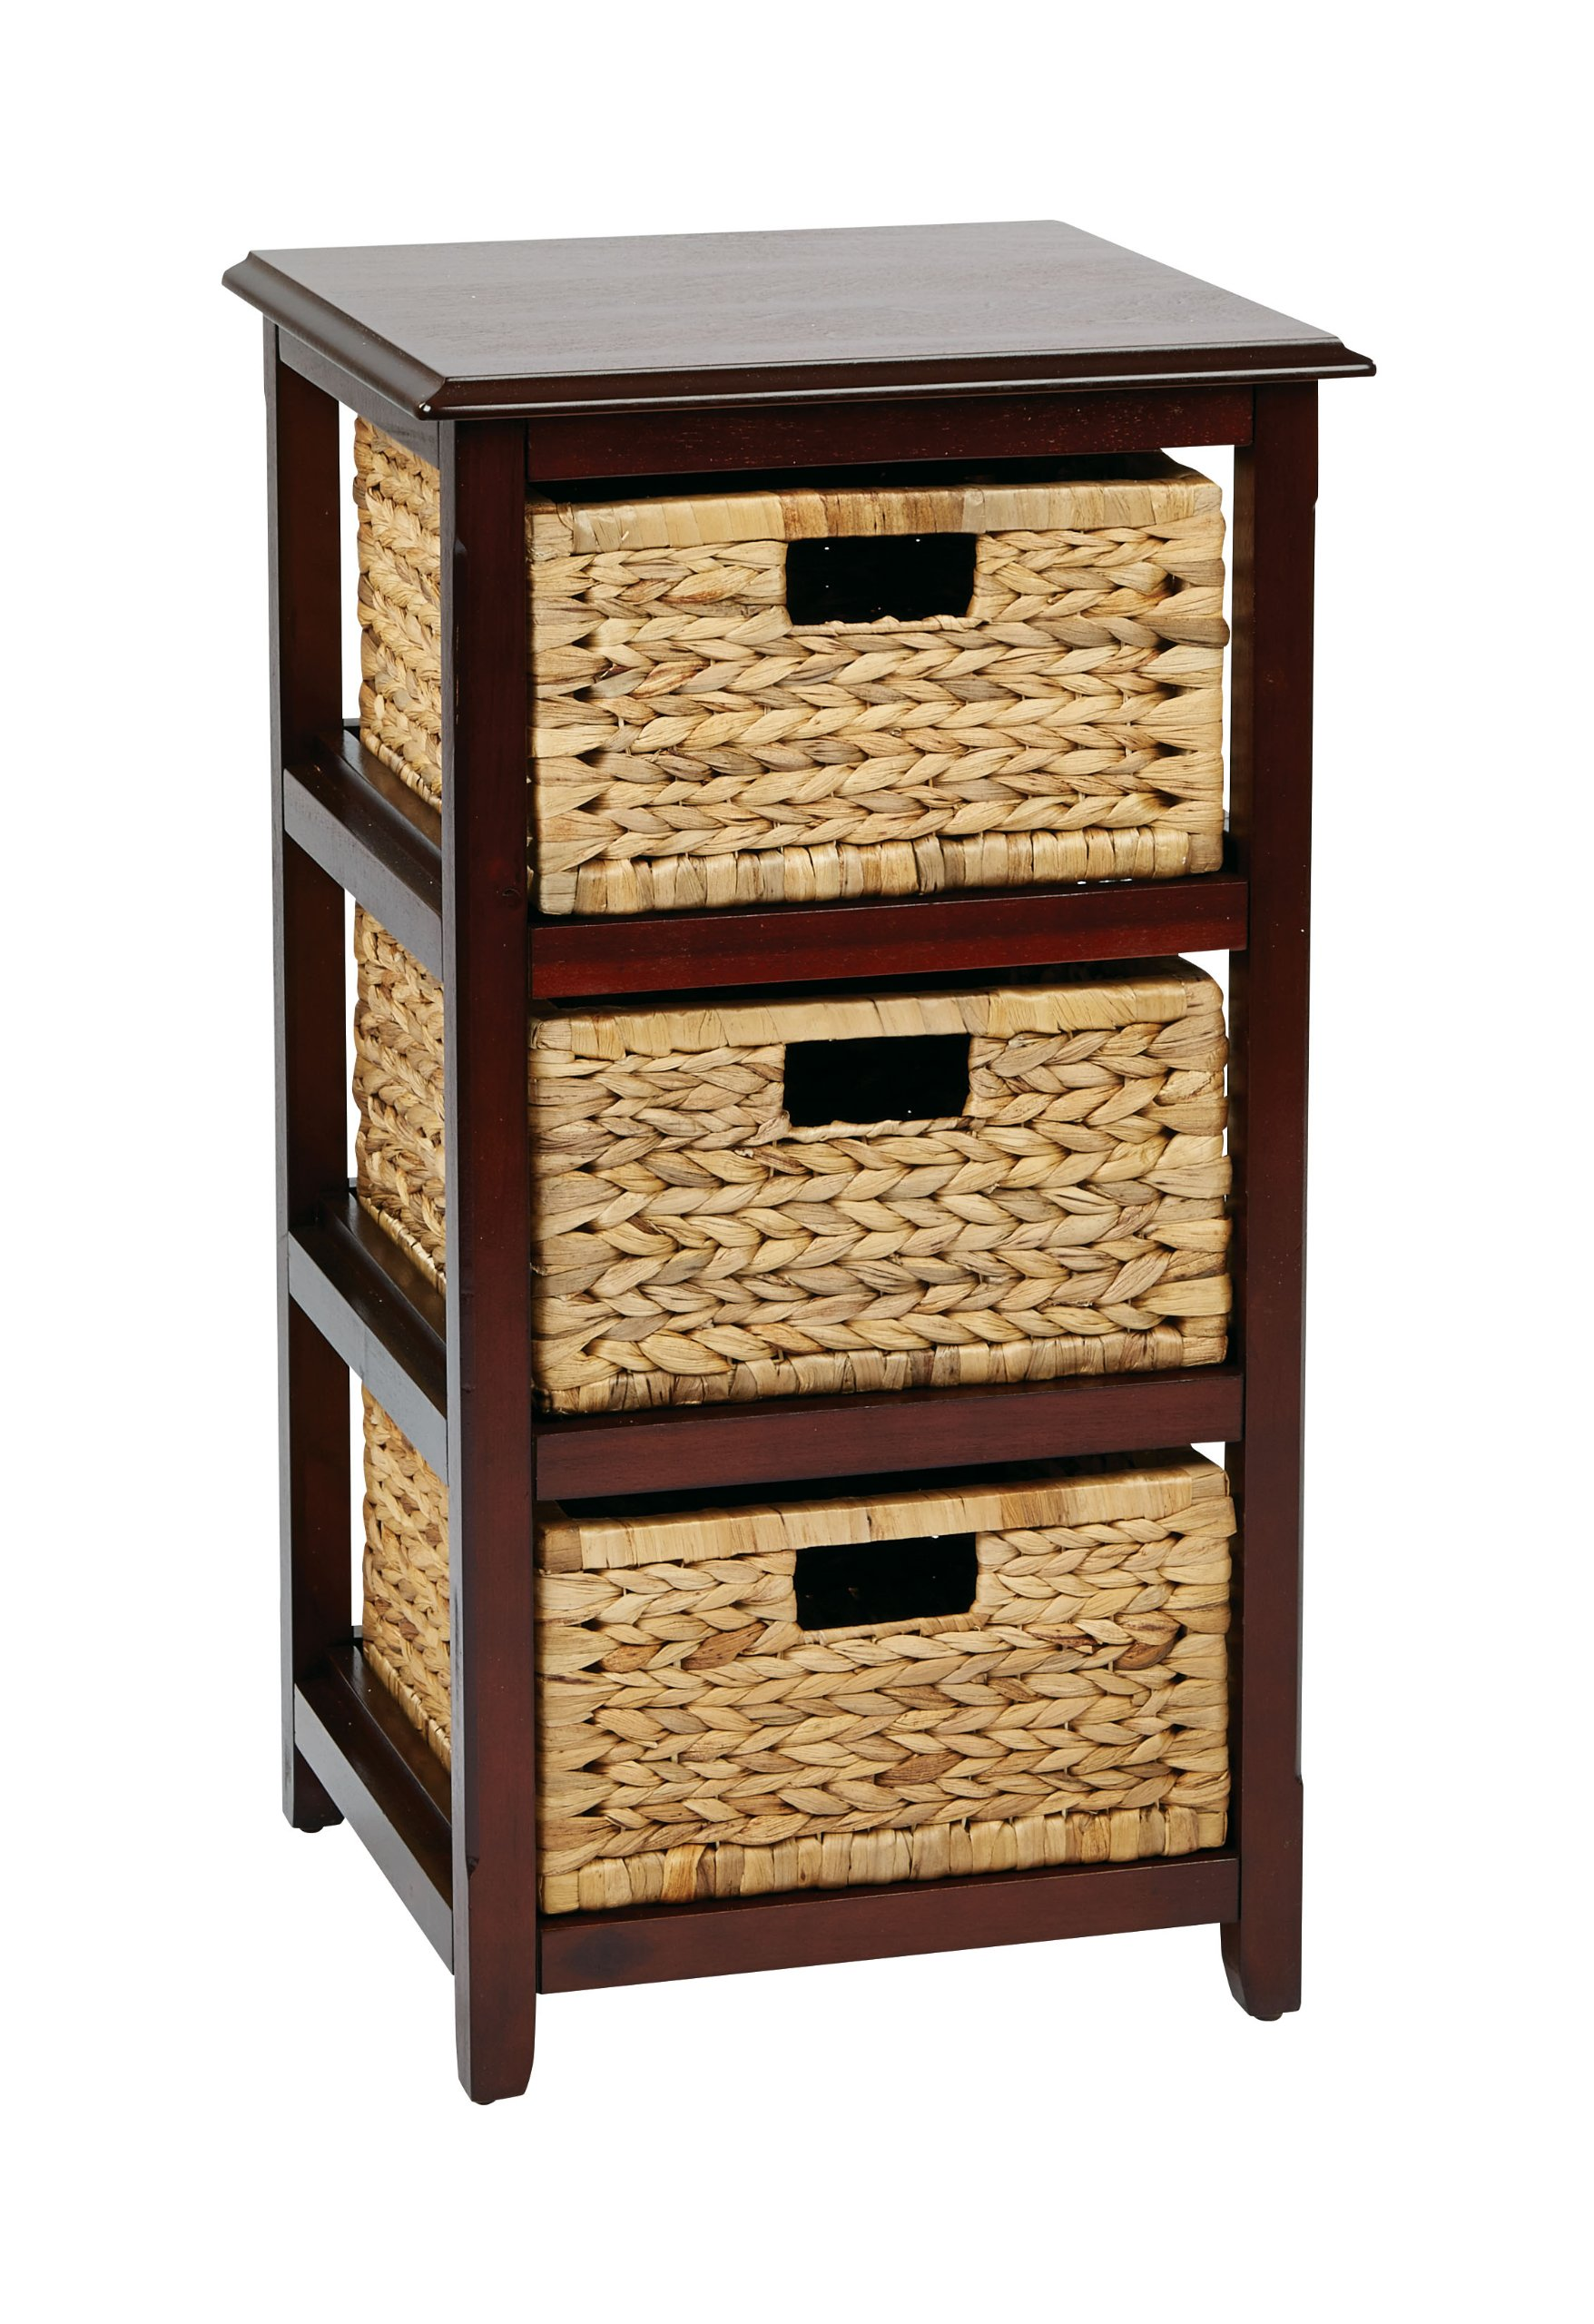 OSP Designs Office Star Seabrook 3-Tier Storage Unit with Natural Baskets, Espresso by OSP Designs